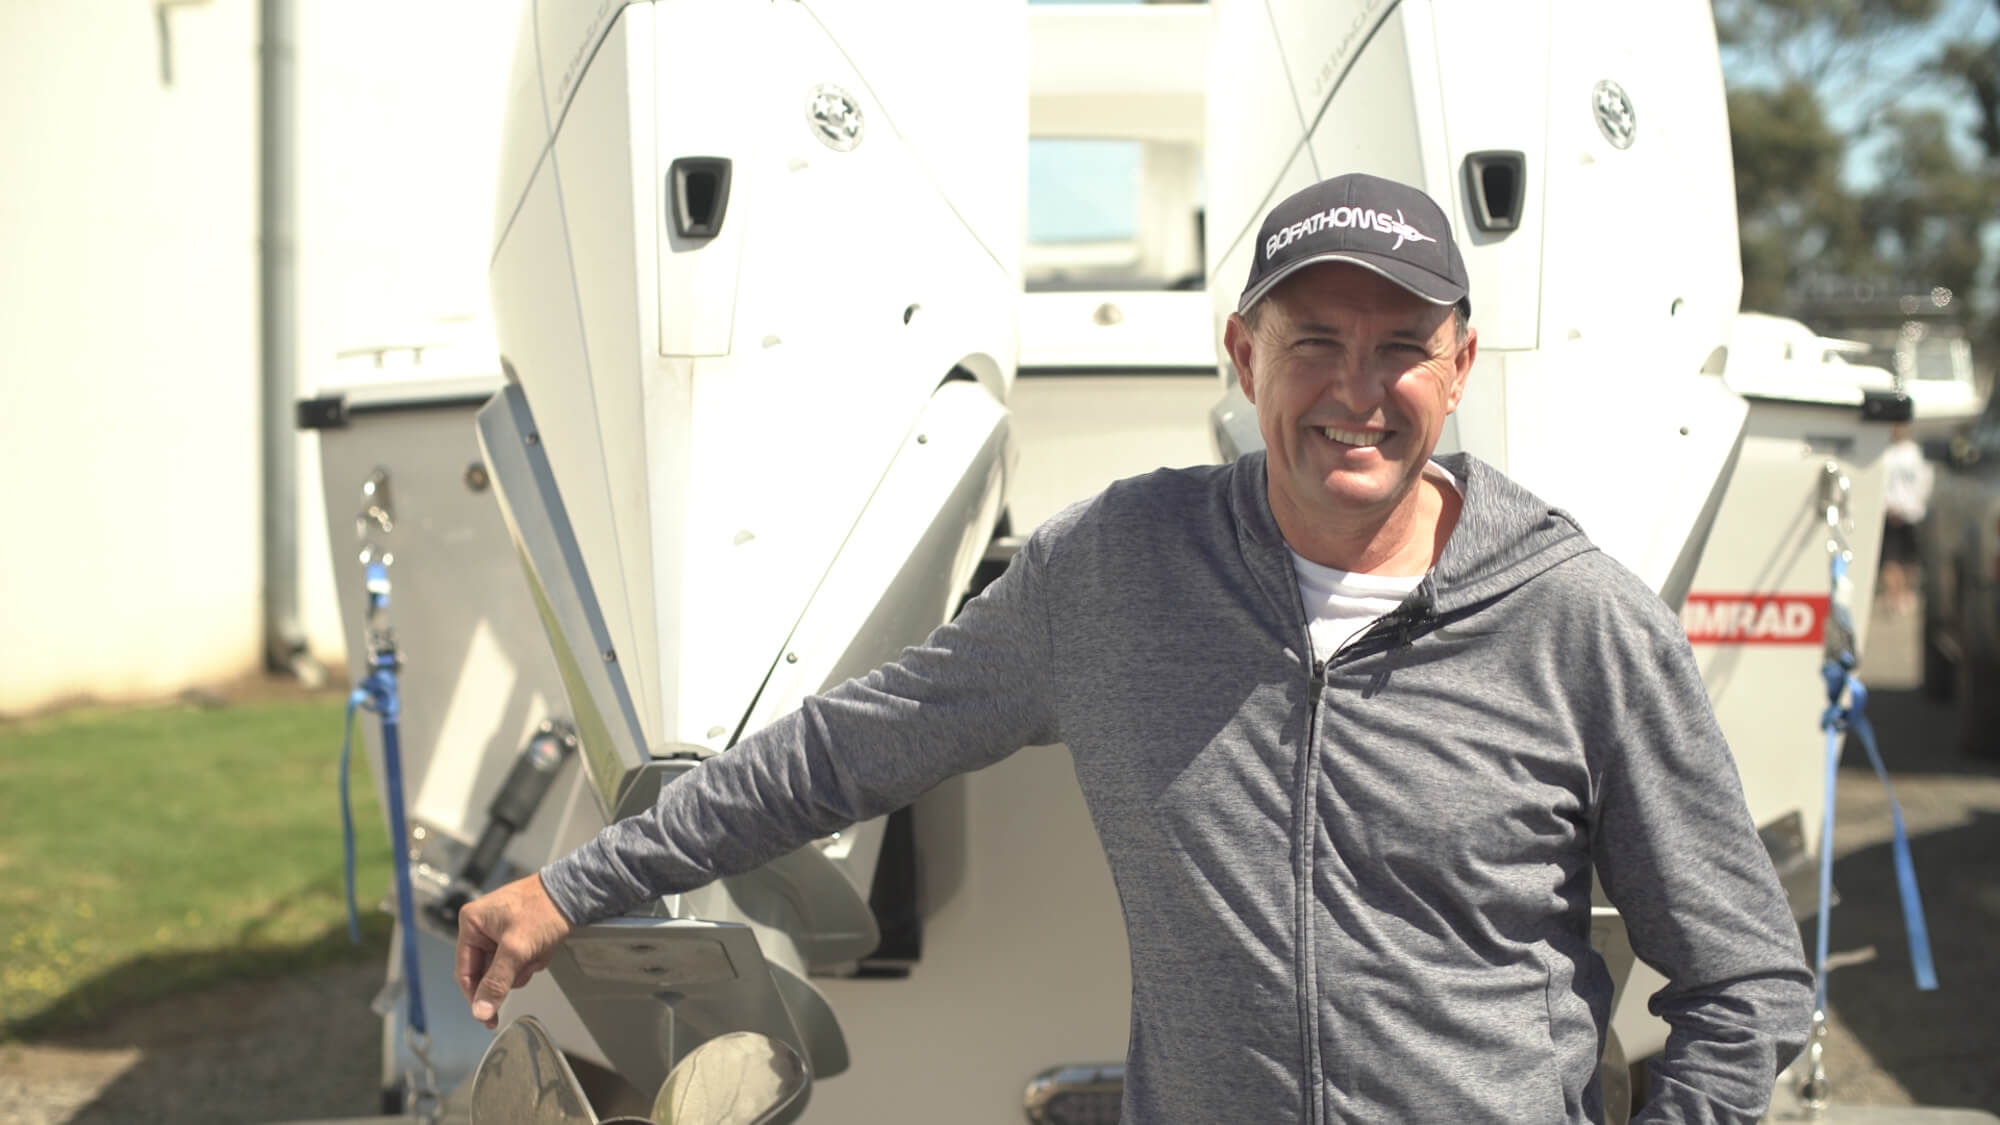 Edencraft owner poses in front of his Edencraft 233 Formula Classic Hardtop with twin 300hp Mercury outboard motors